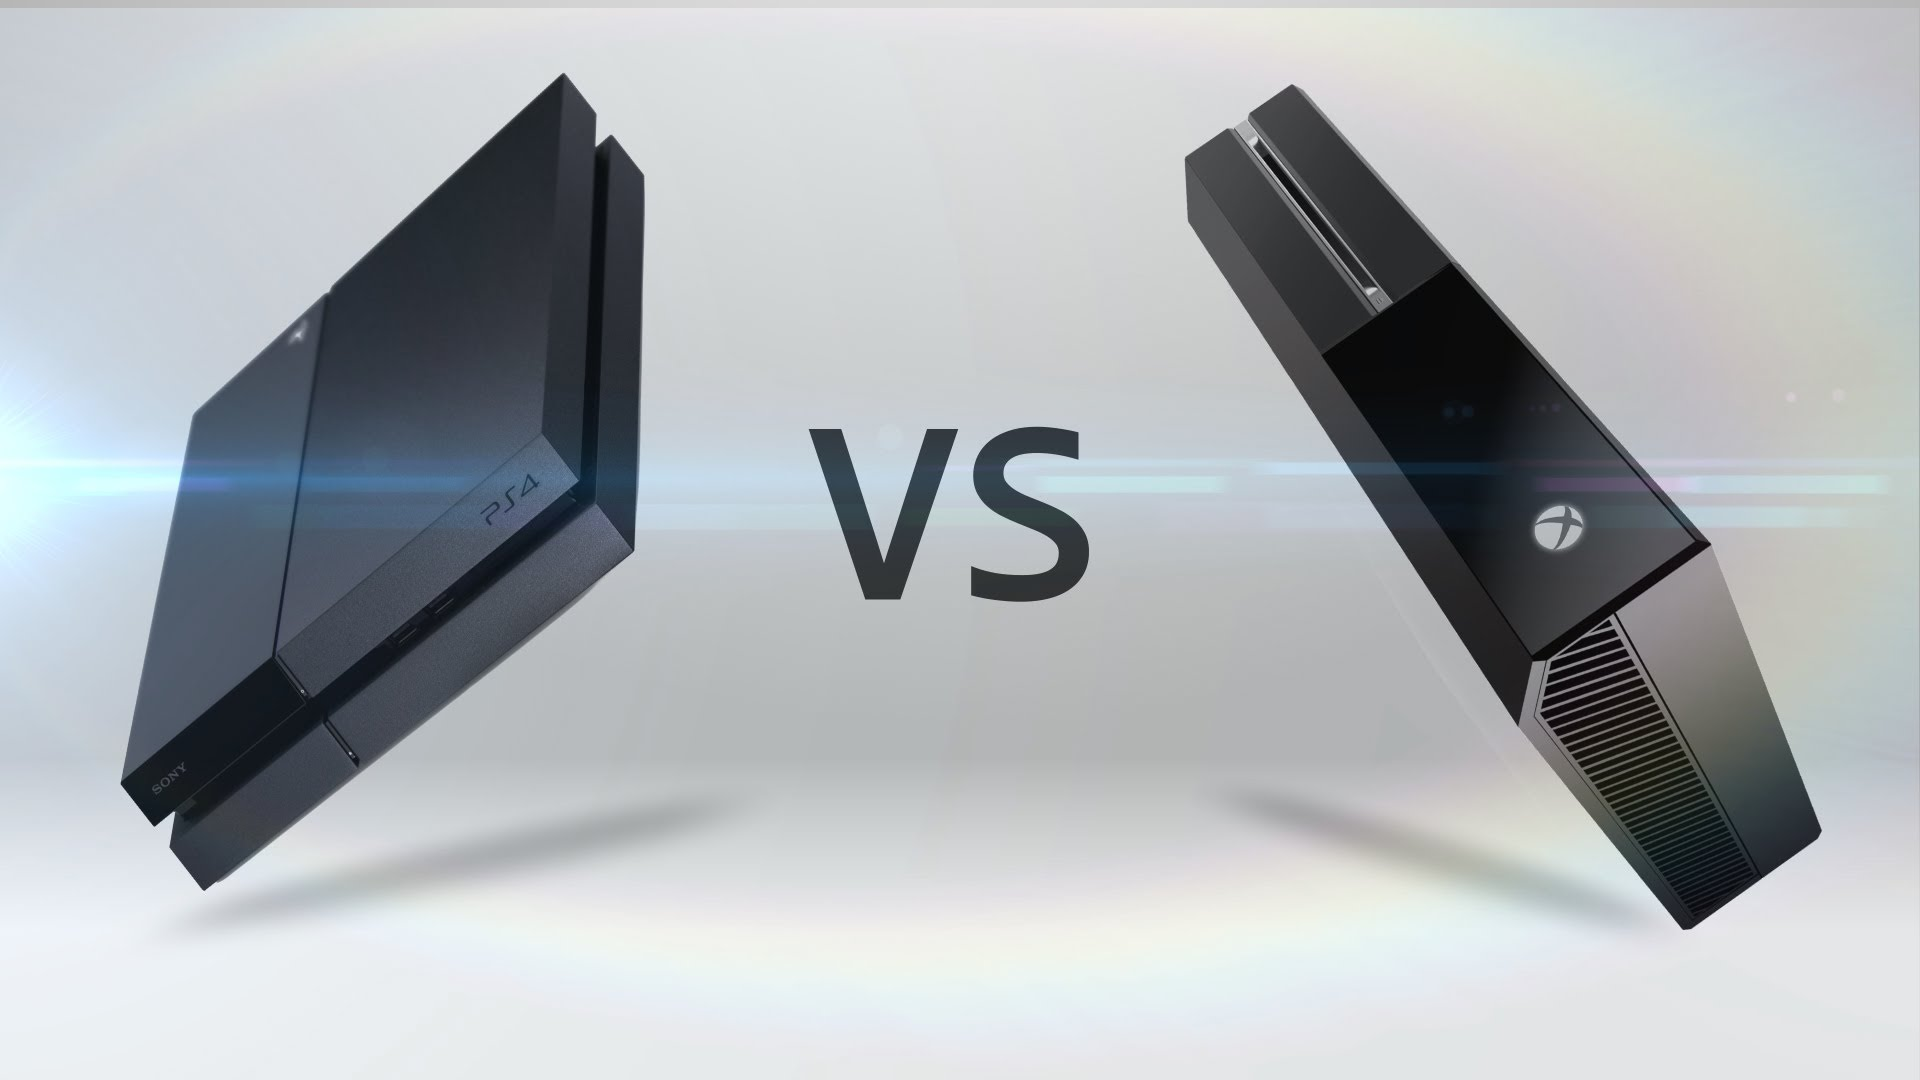 Playstation vs Xbox Wallpaper Versus Ps4 vs Xbox One One